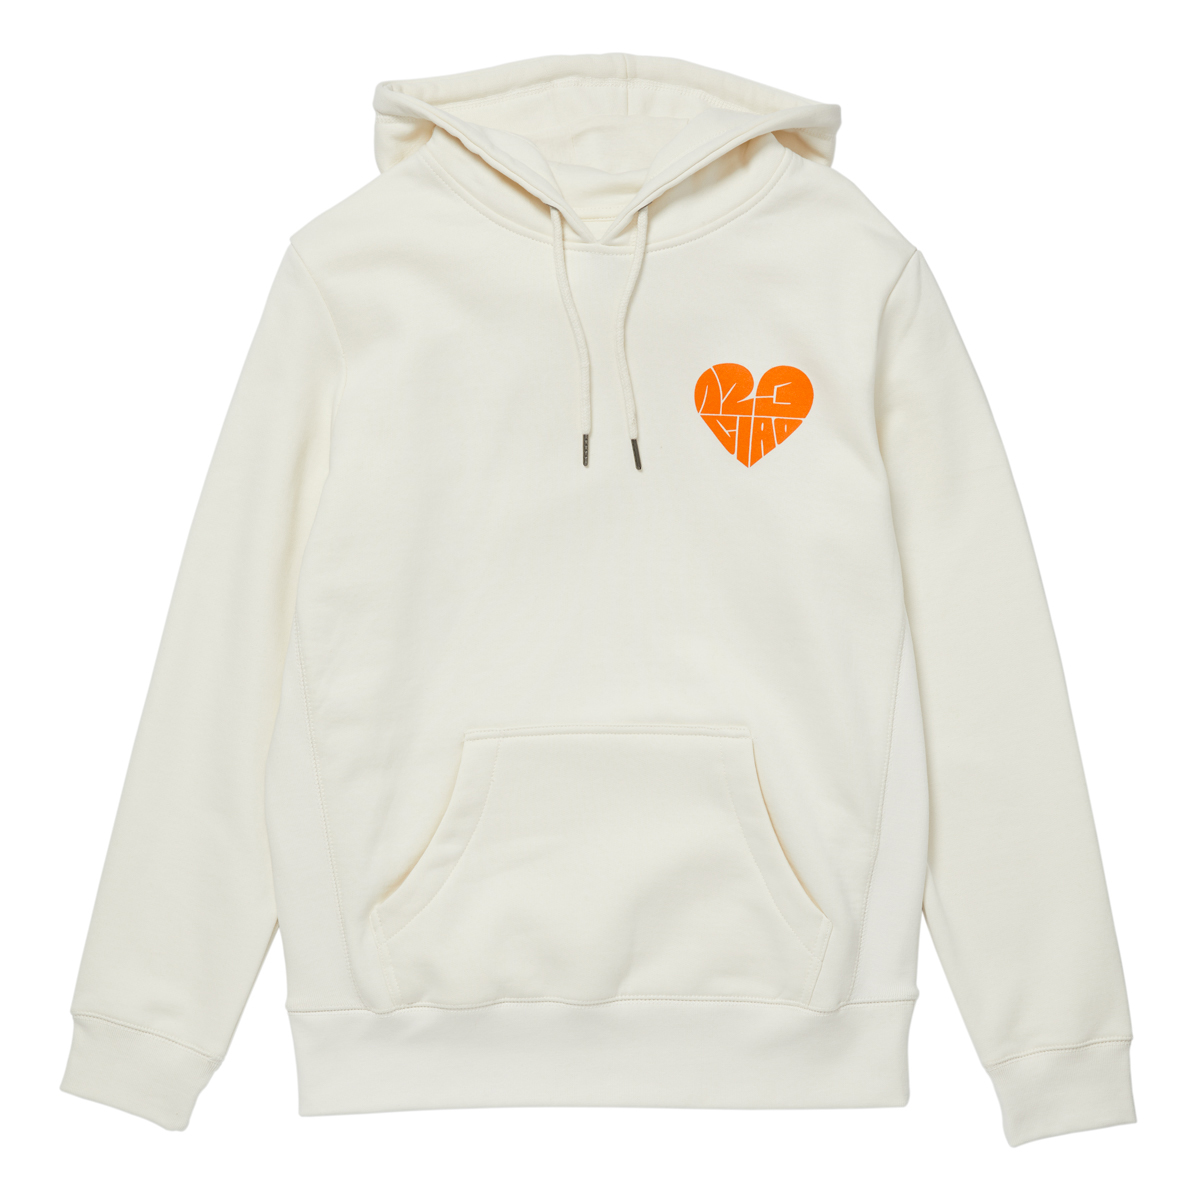 1,2,3 Ciao Hoodie - Natural with Orange Logo